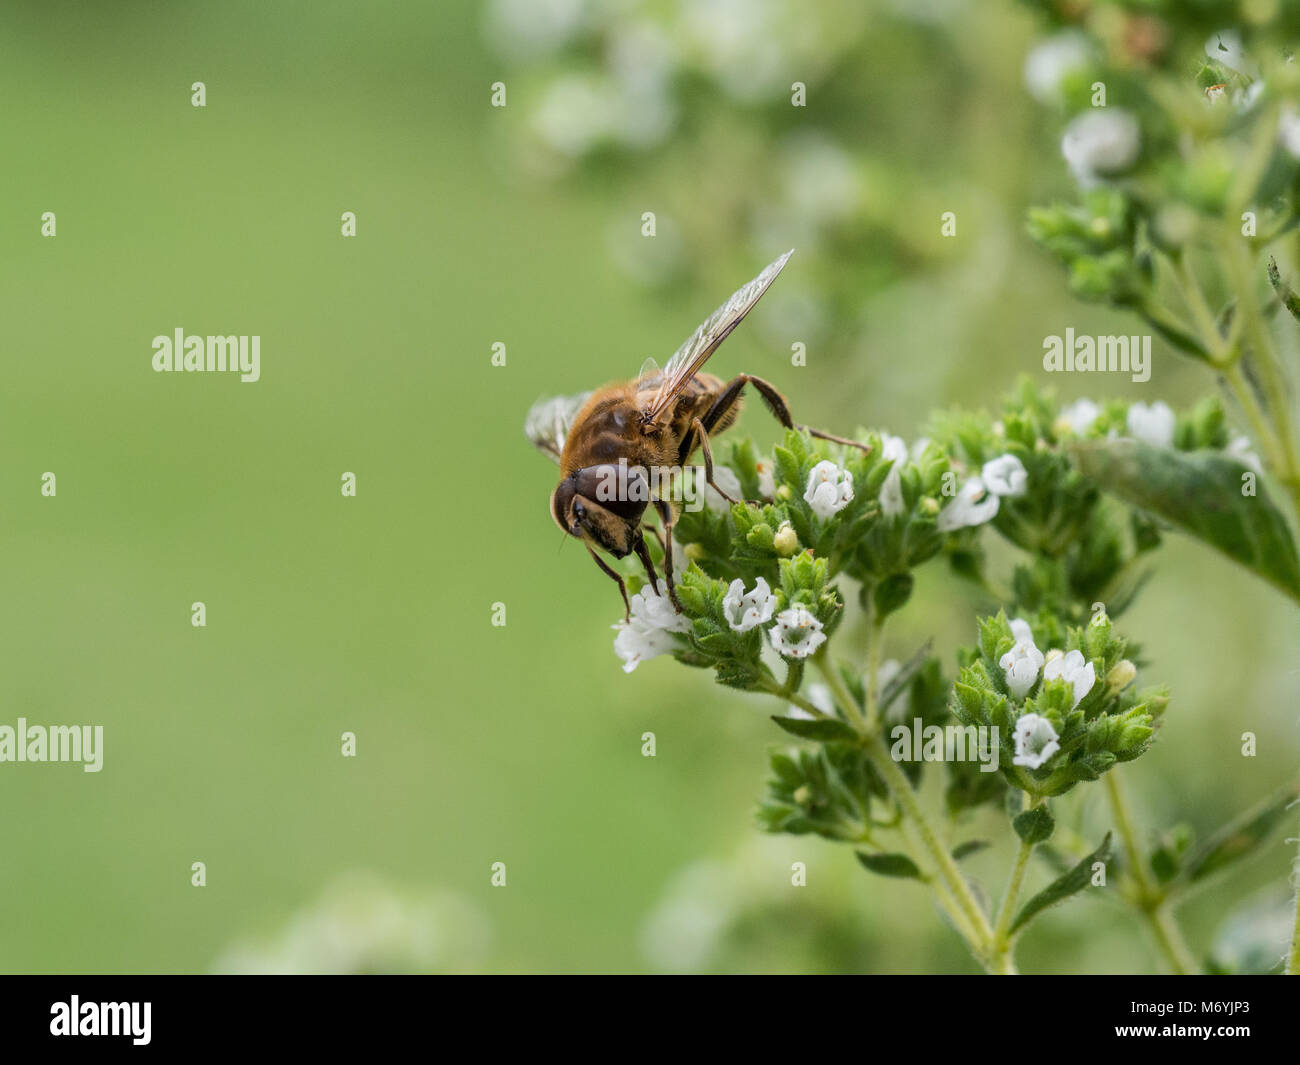 Close up of a communal mining bee feeding on an Origanum flower - Stock Image